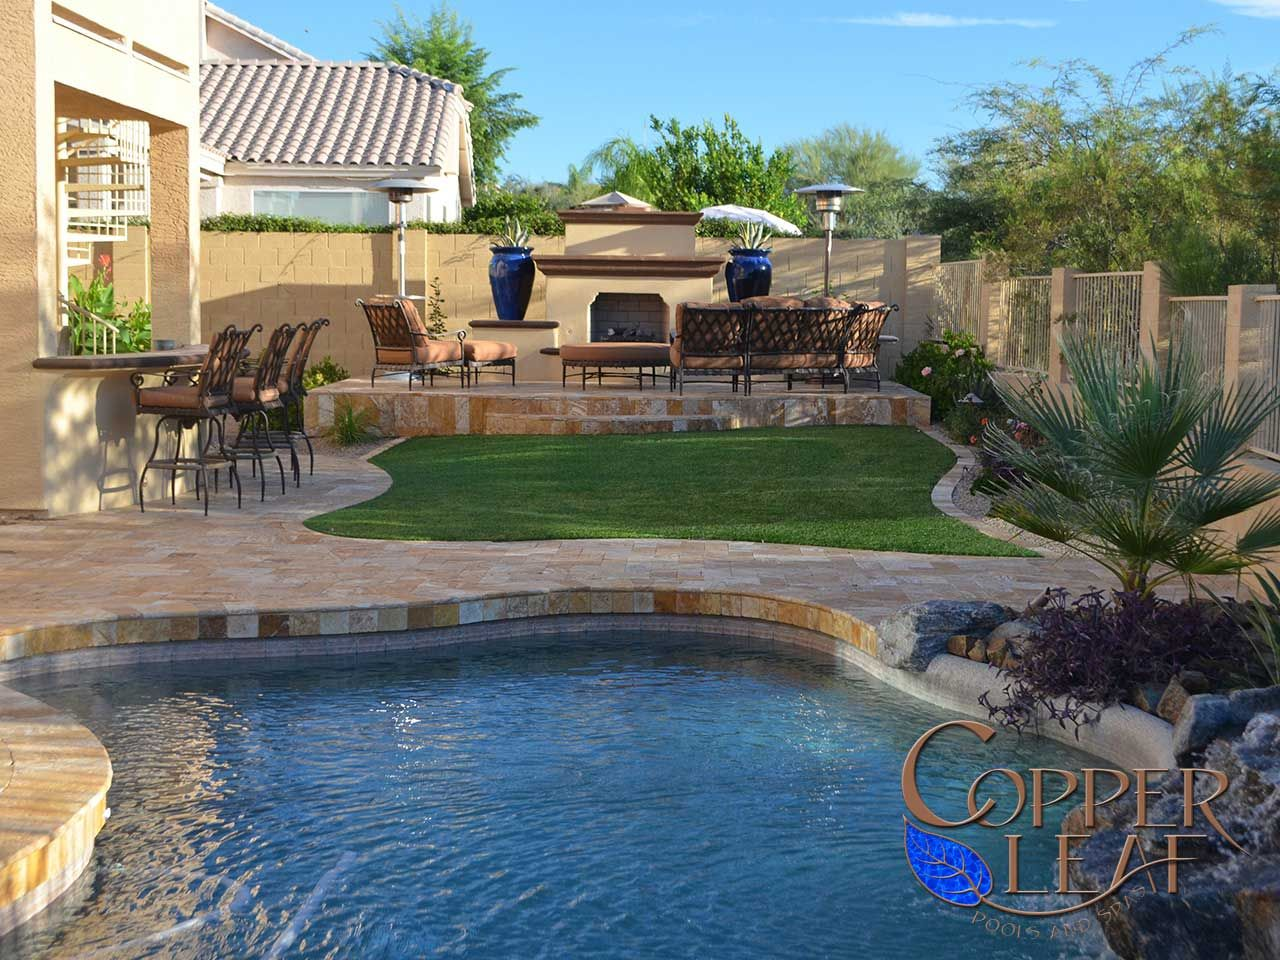 pool remodel gold travertine pavers barbecue bar fireplace